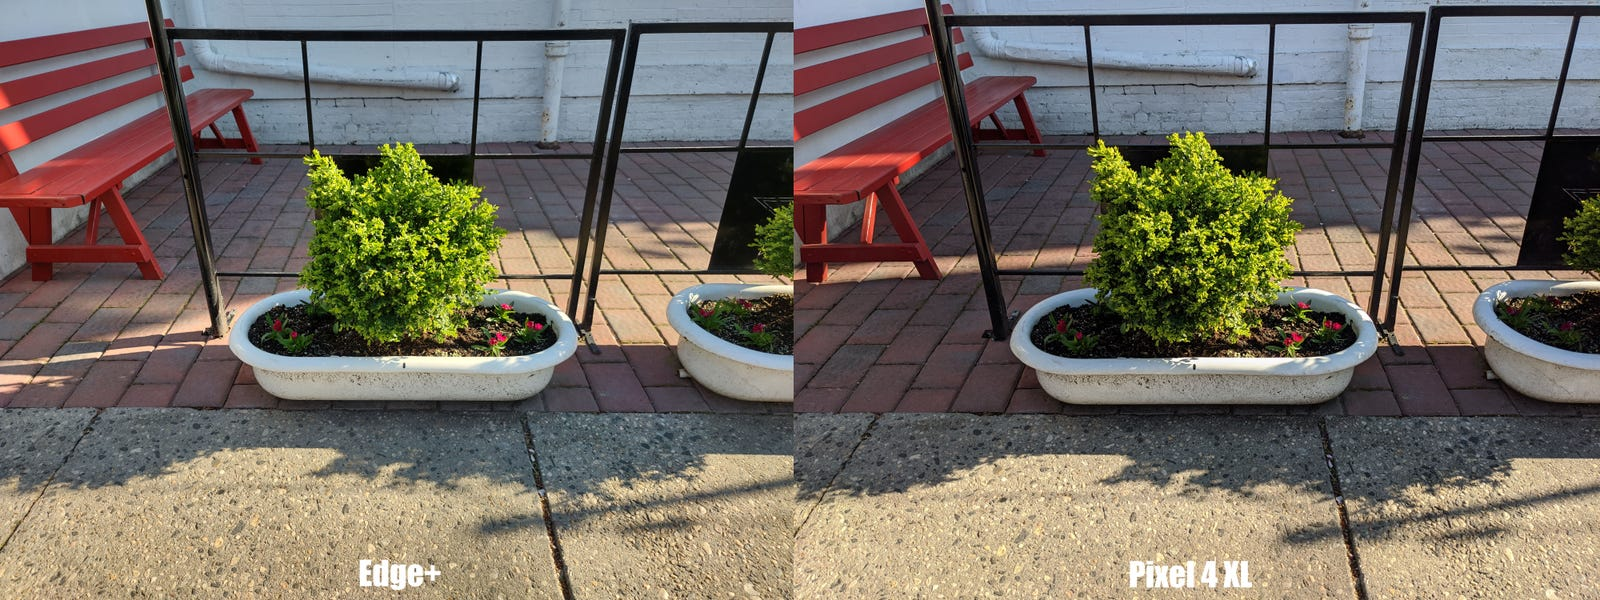 While the Edge+'s photo is good, the Pixel 4's shot has better contrast and slightly richer colors. Note: The Edge+'s pics have been cropped down to 12-MP, as its default 25-MP images make it hard to create comparison shots.